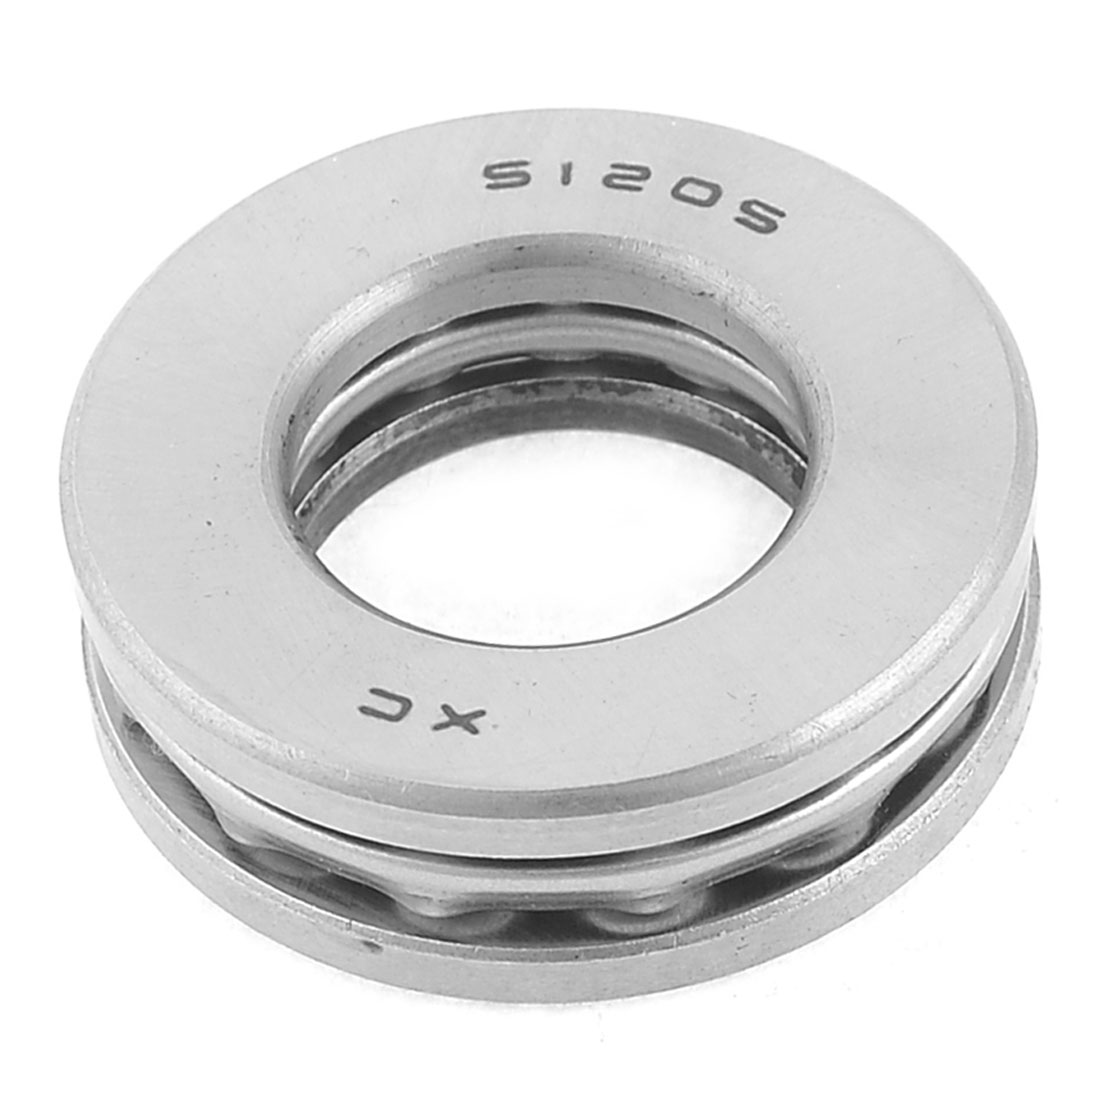 51205 Single Direction Thrust Ball Roller Bearing 25mm x 46mm x 15mm